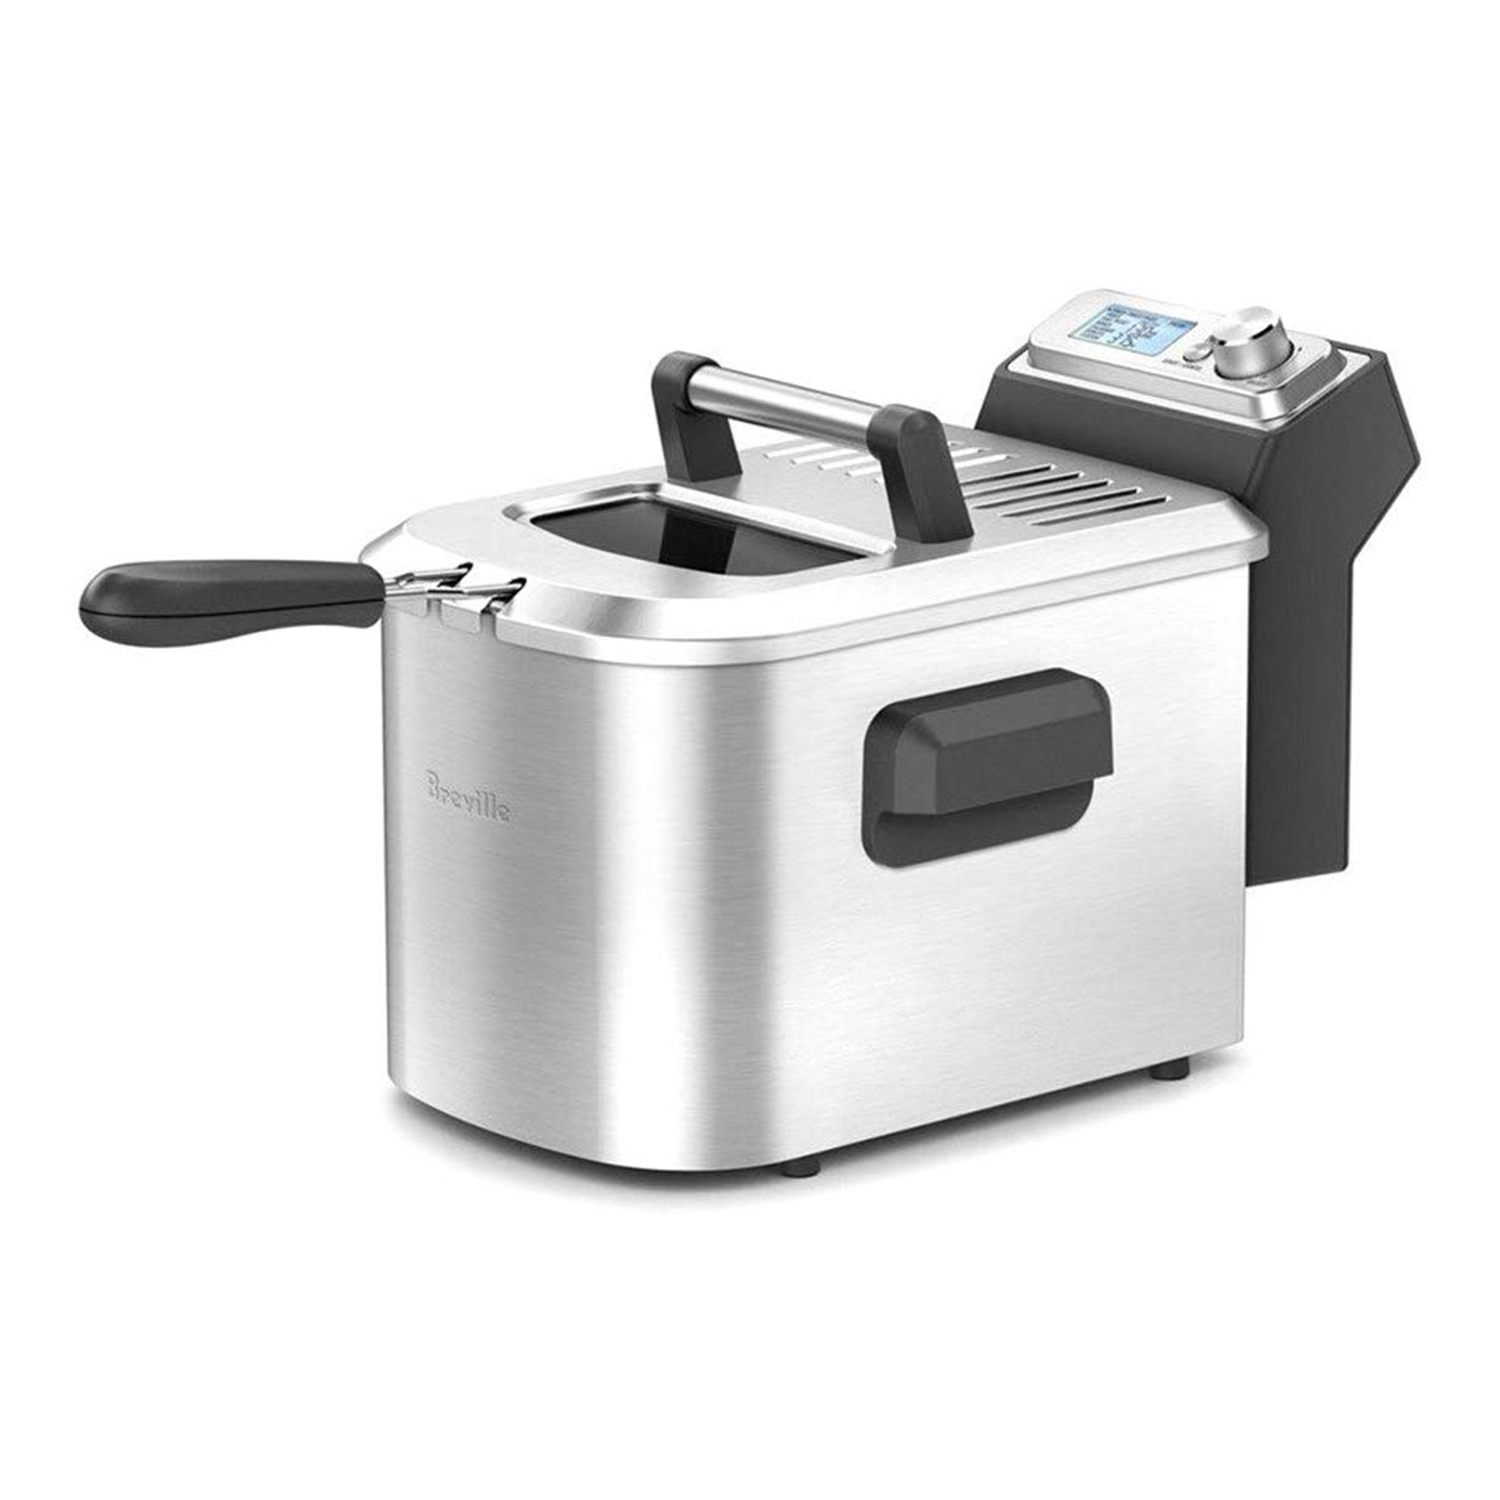 Breville BDF500XL Smart Fryer: Deep Fryers